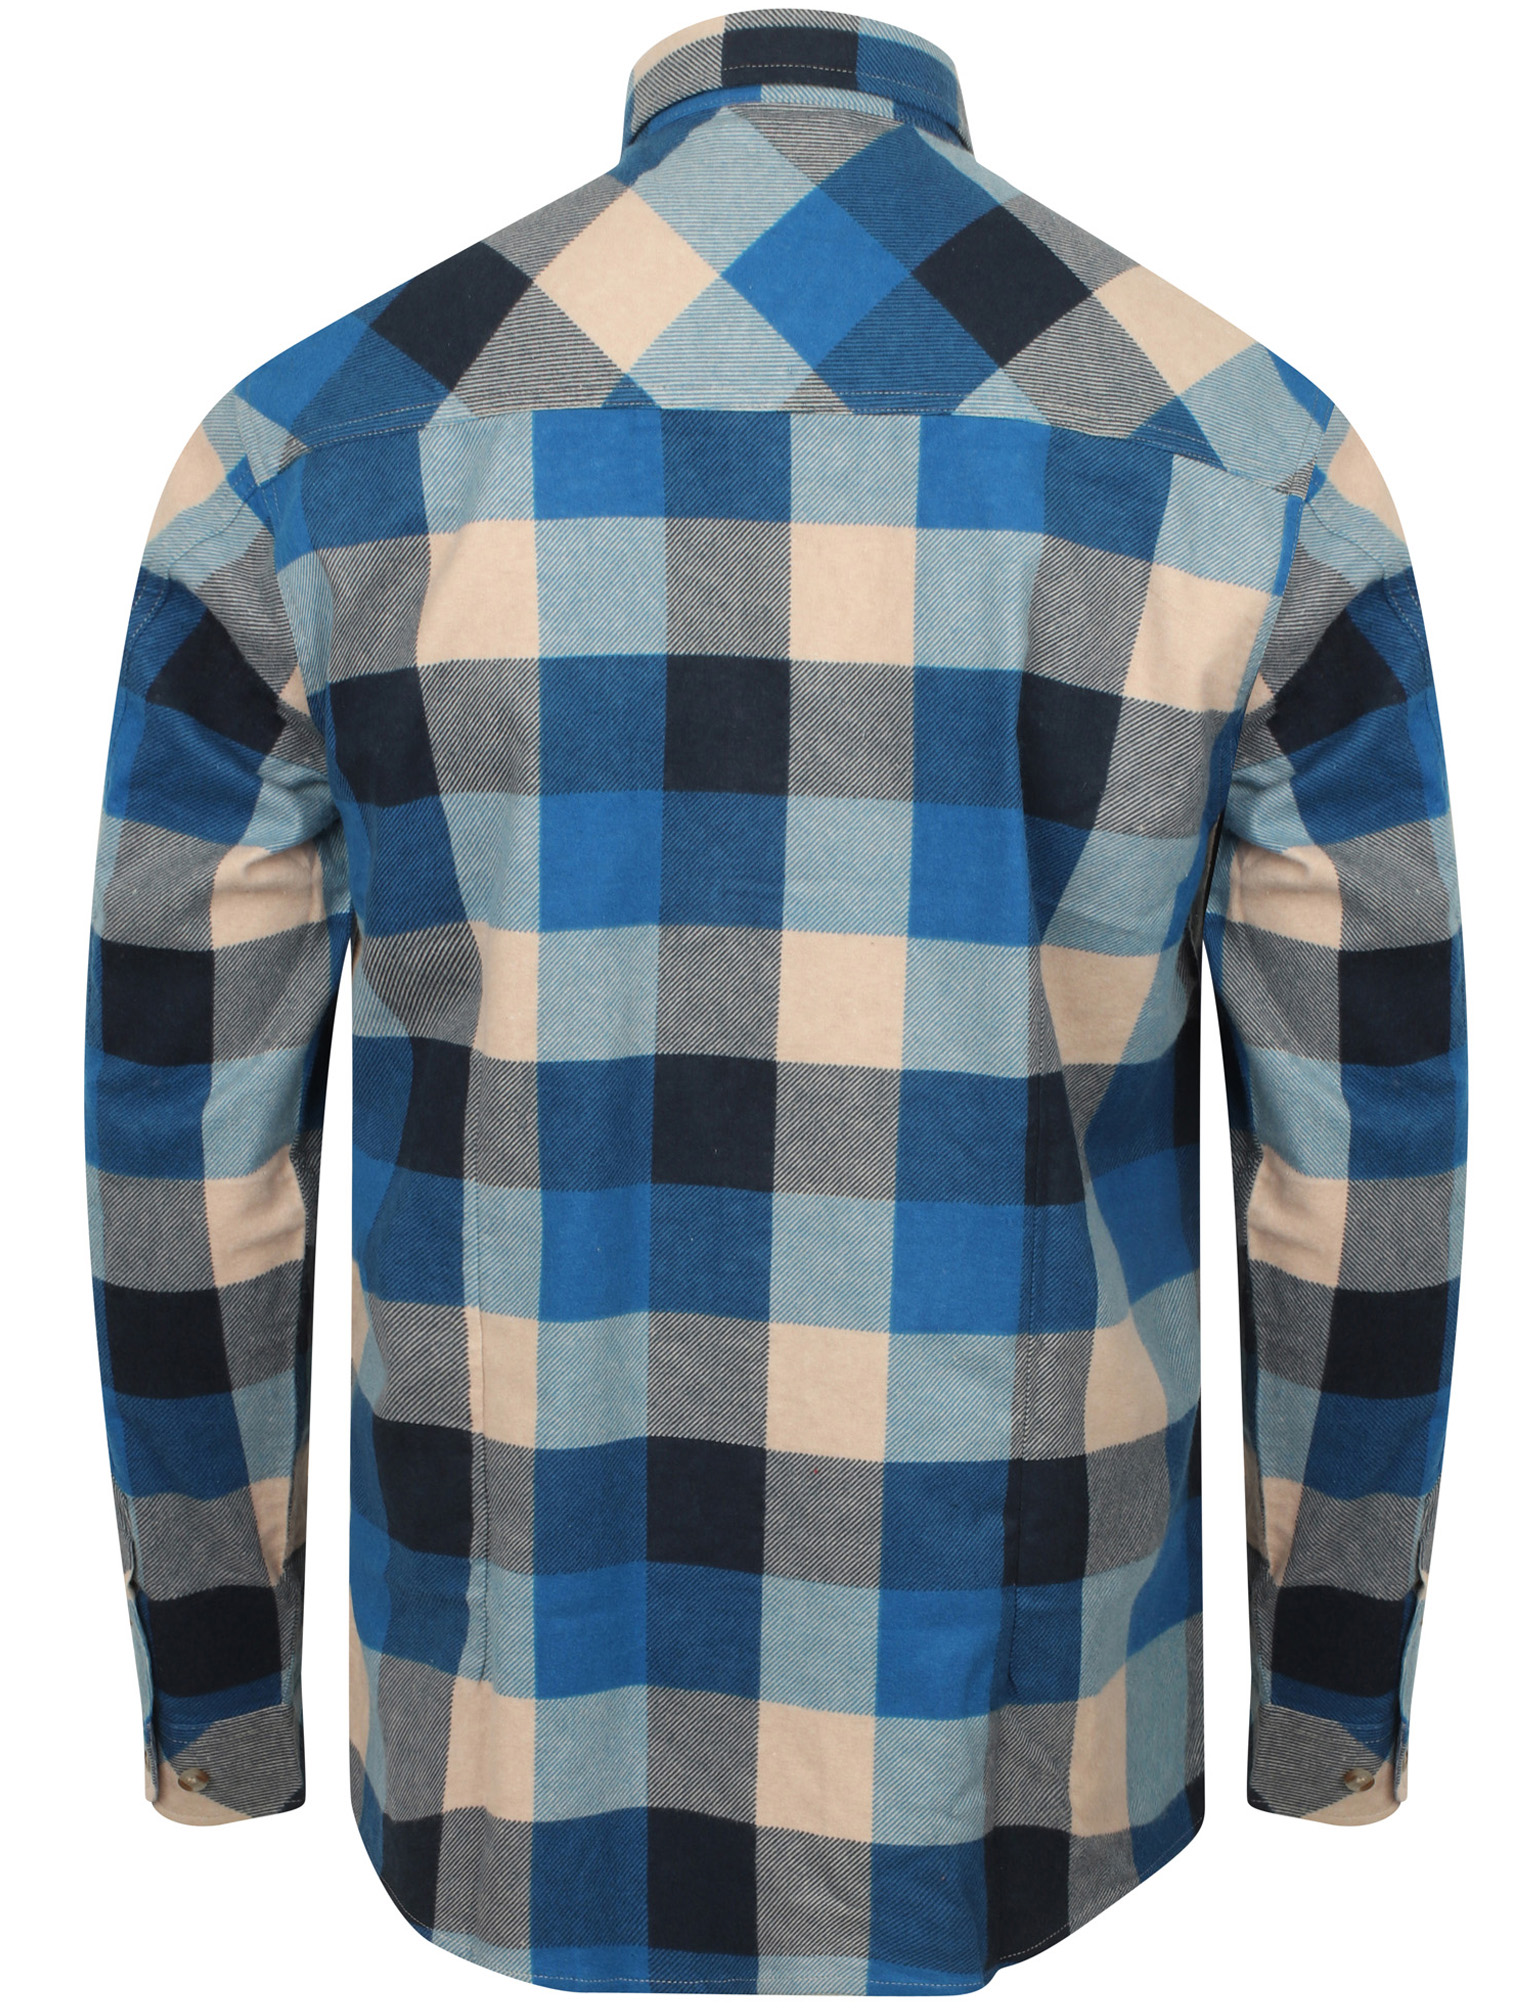 New-Mens-Tokyo-Laundry-Cotton-Long-Sleeve-Checked-Flannel-Shirt-Size-S-XXL thumbnail 25